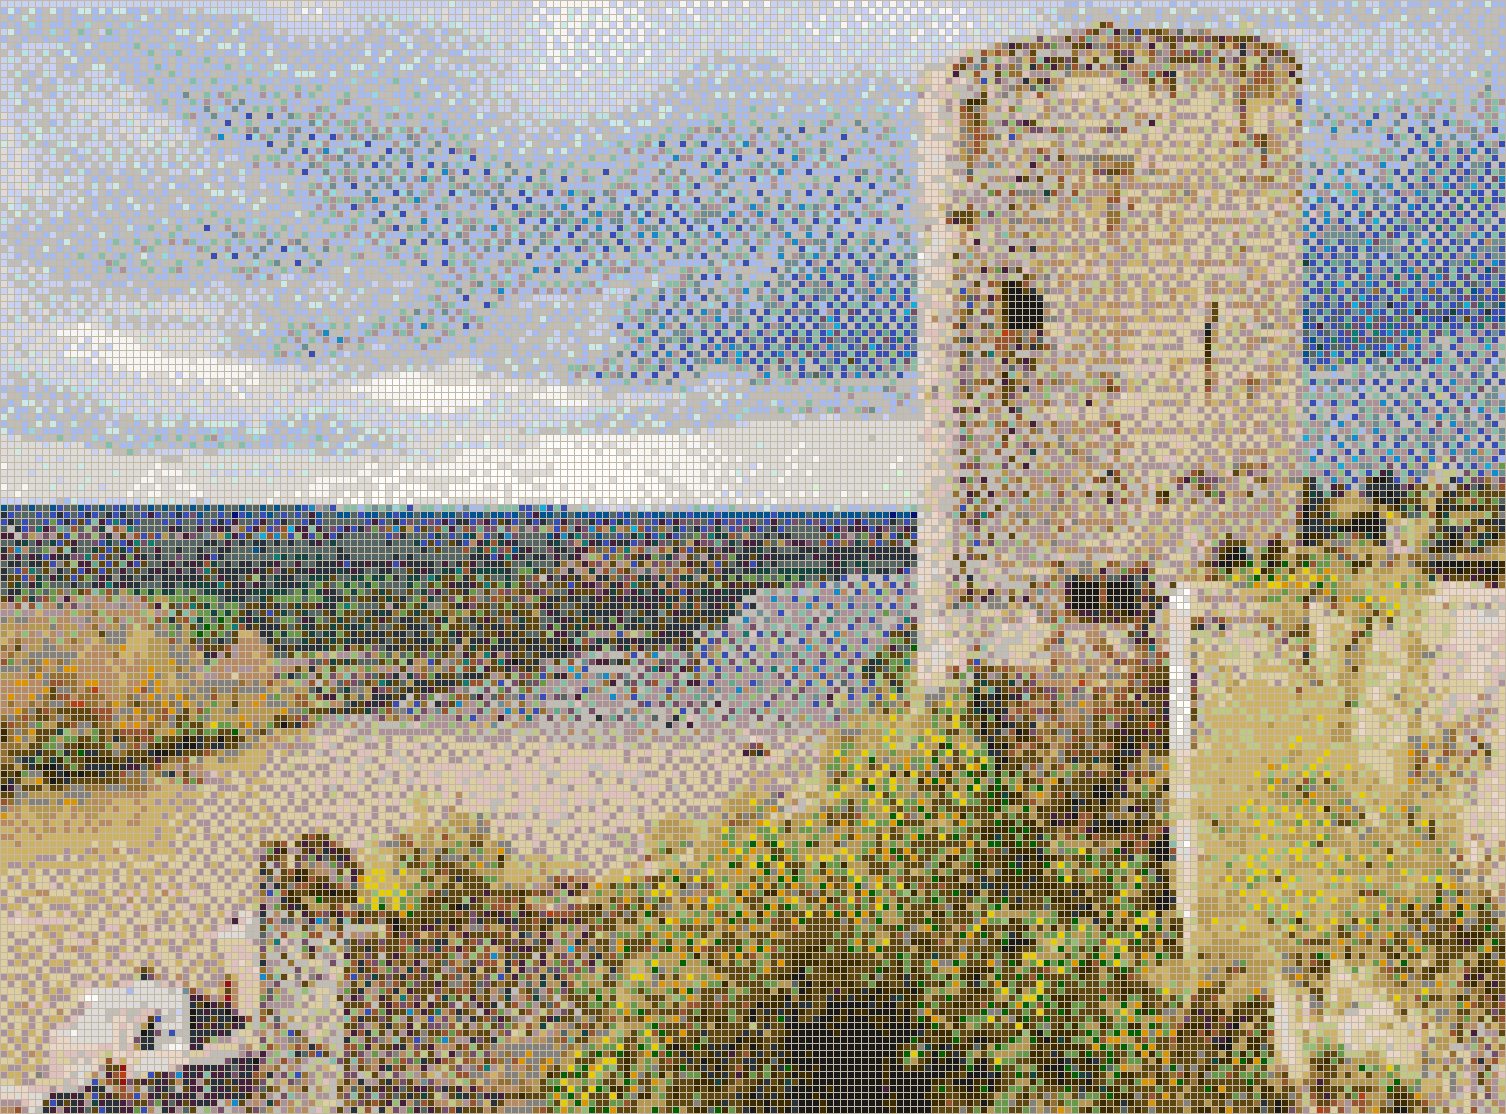 Loire Valley Tower (Château de Chinon) - Mosaic Tile Picture Art